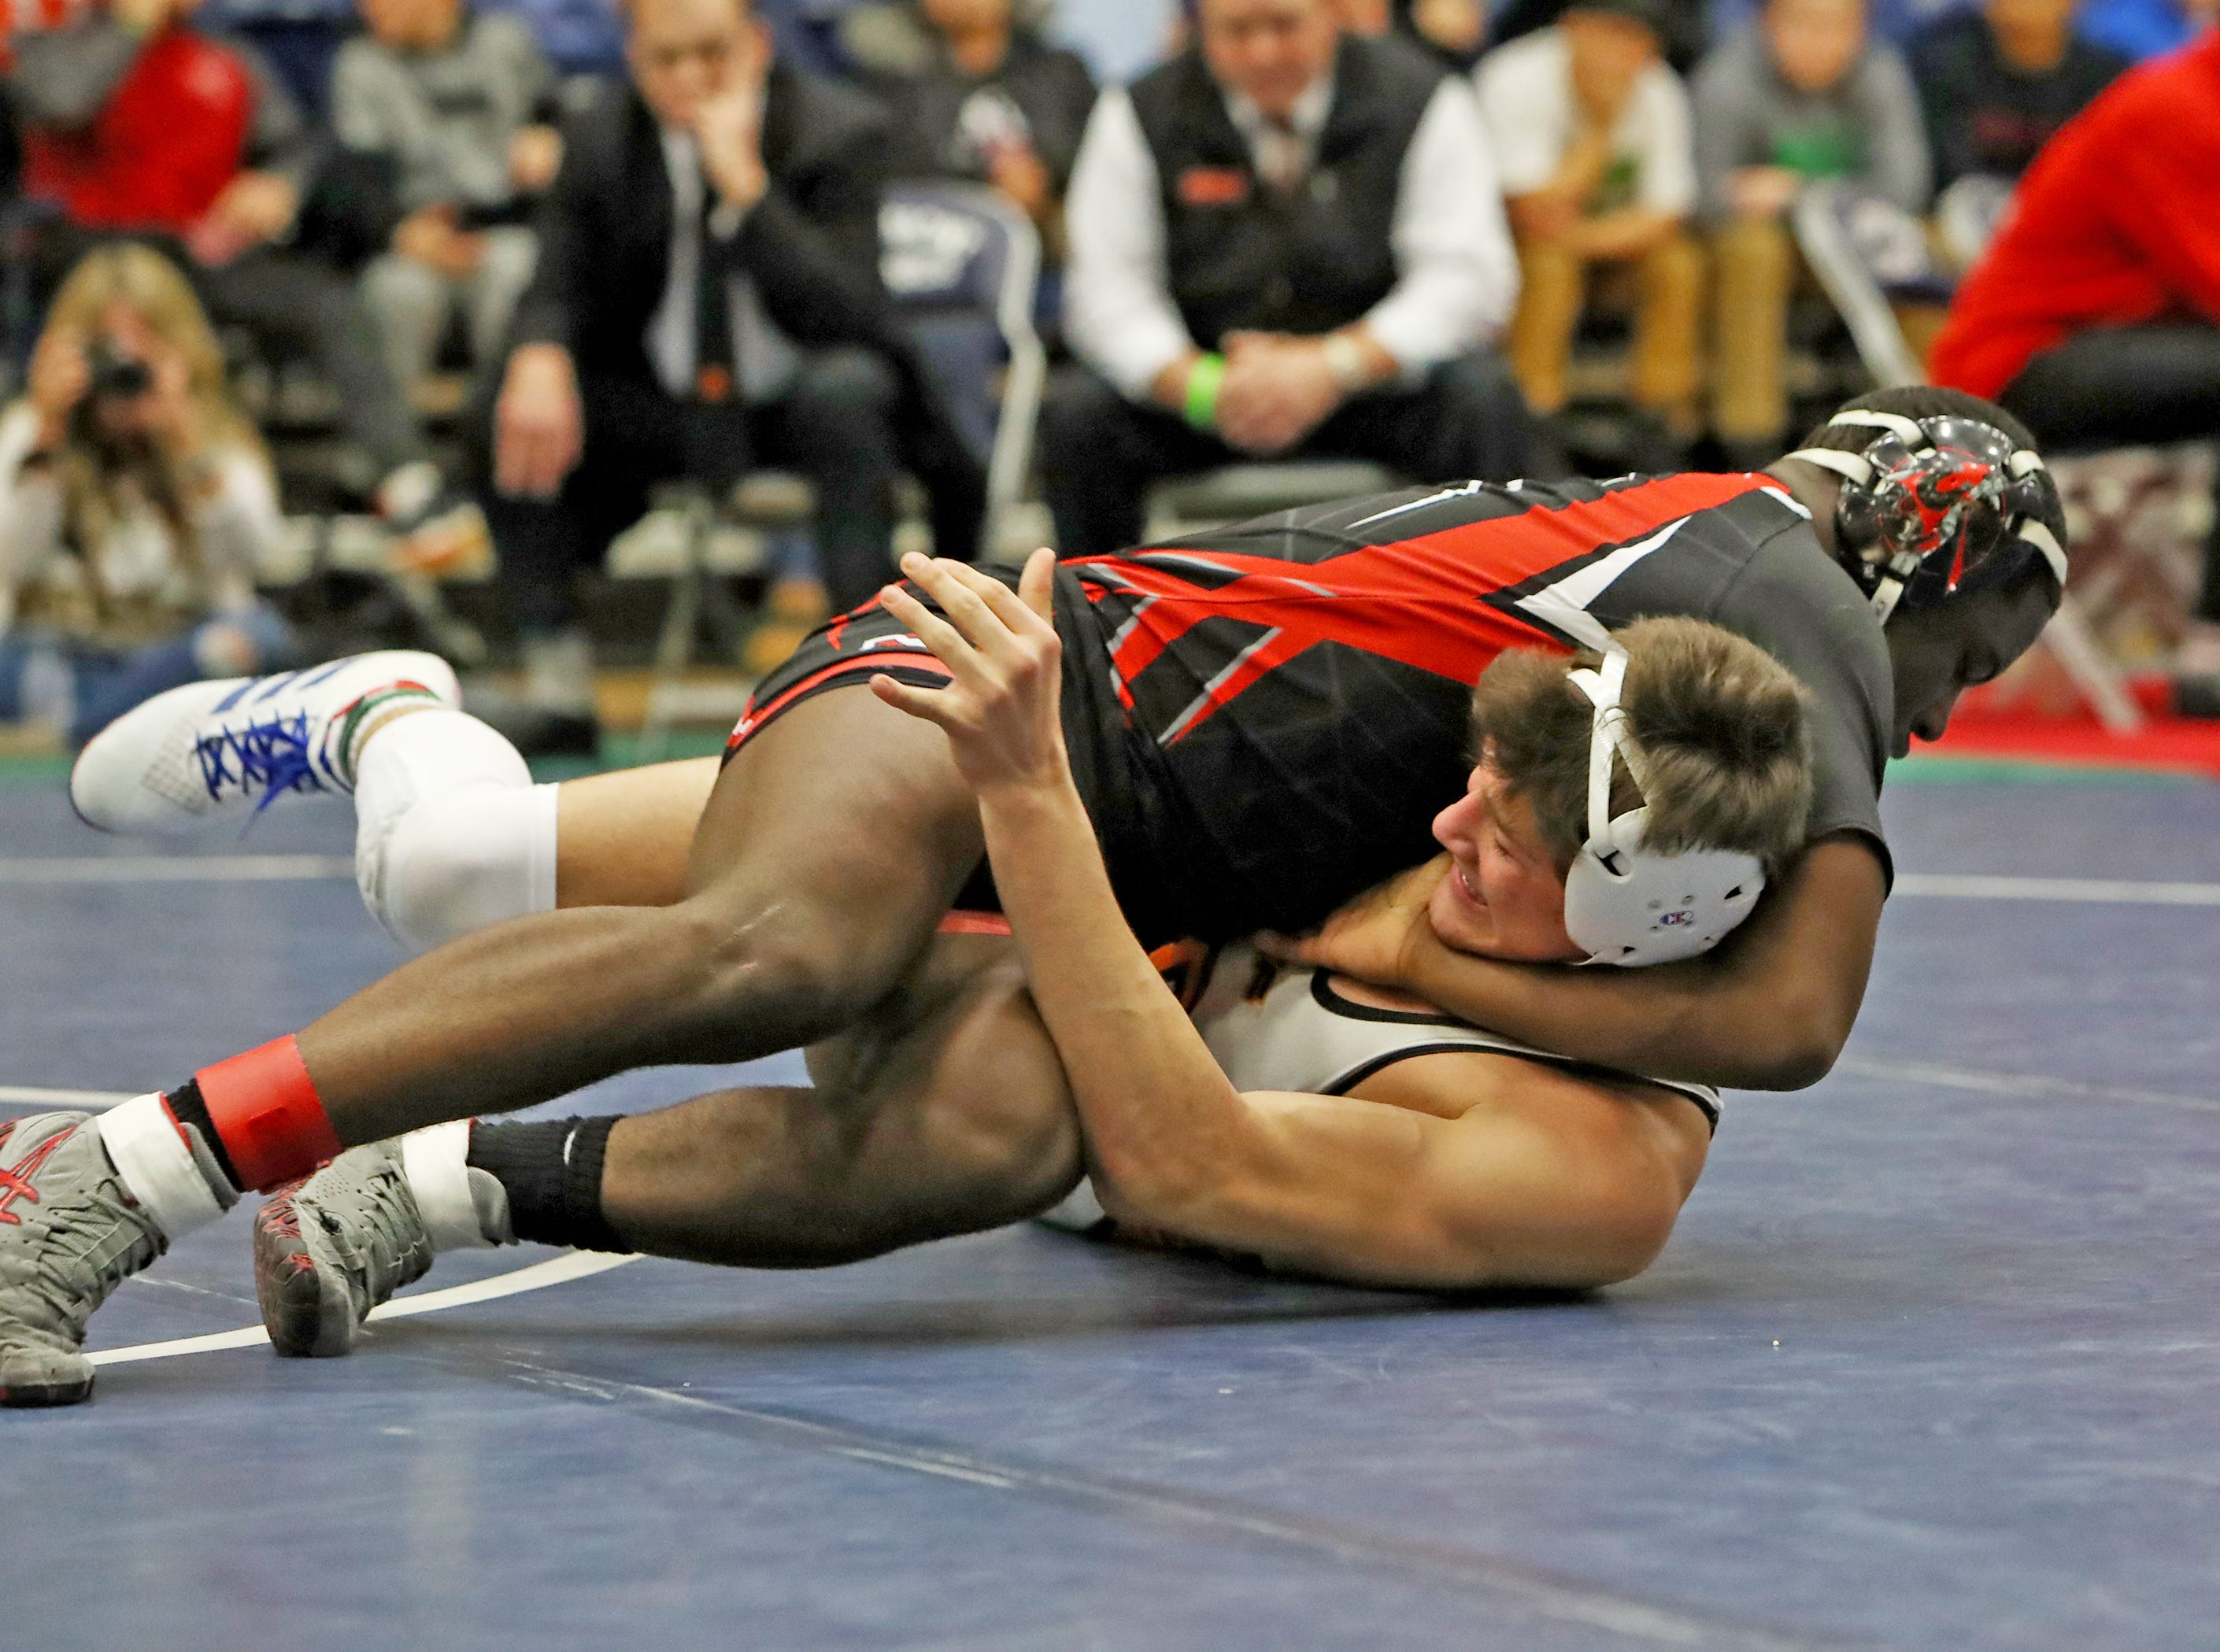 E'Lan Heard from La Salle pins Gavin Bell from Beavercreek to win the 152 lbs. championship at the OHSAA Division I Southwest District finals at Fairmont High School Trent Arena.